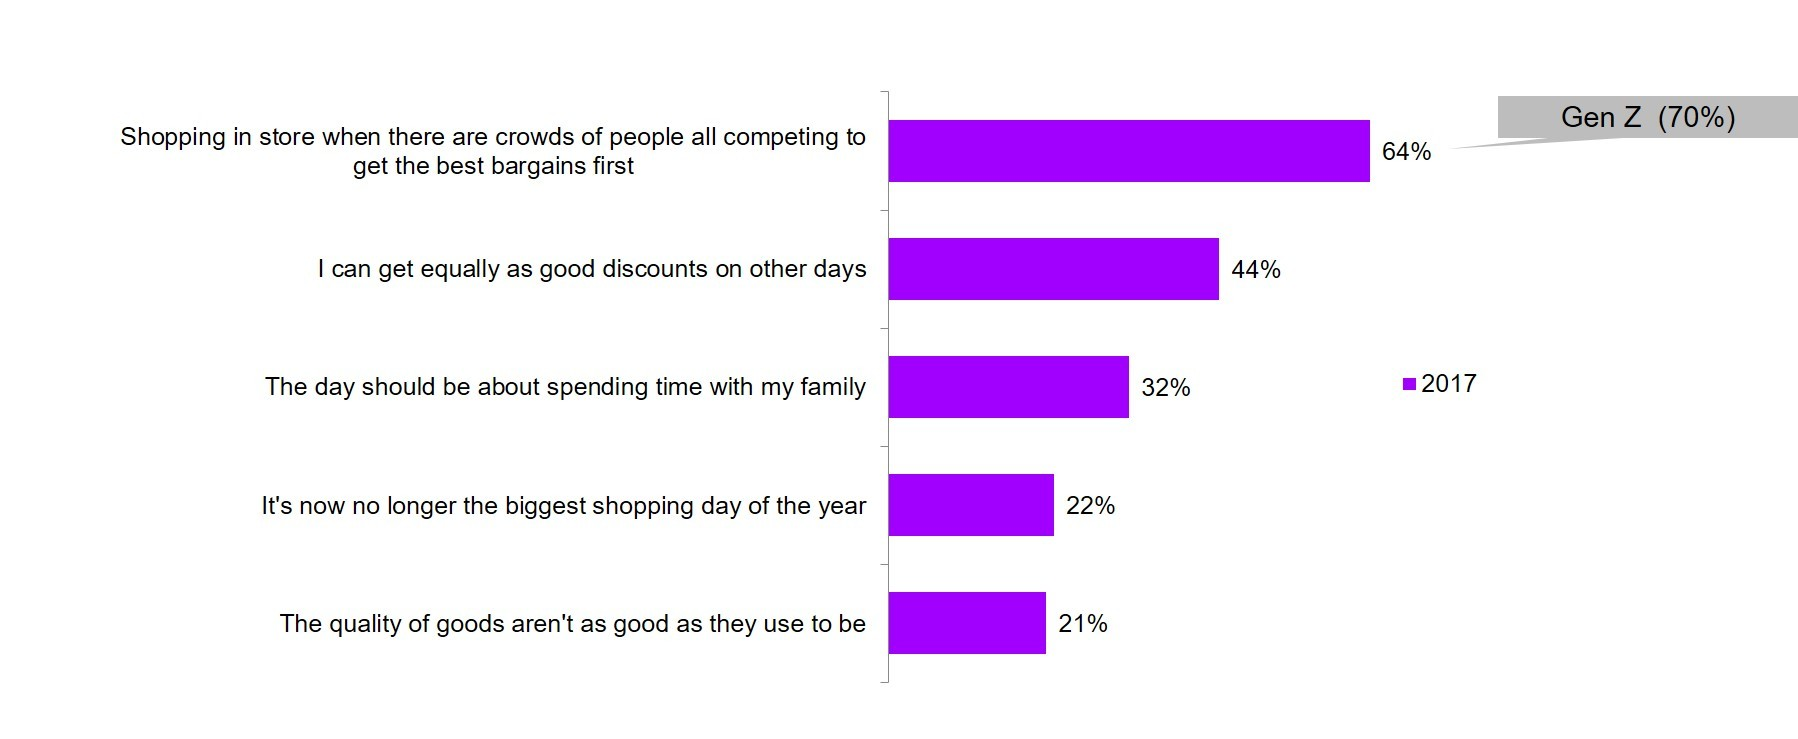 In Shop Online Store Us Consumers More Reluctant To Shop During Peak Holiday Shopping